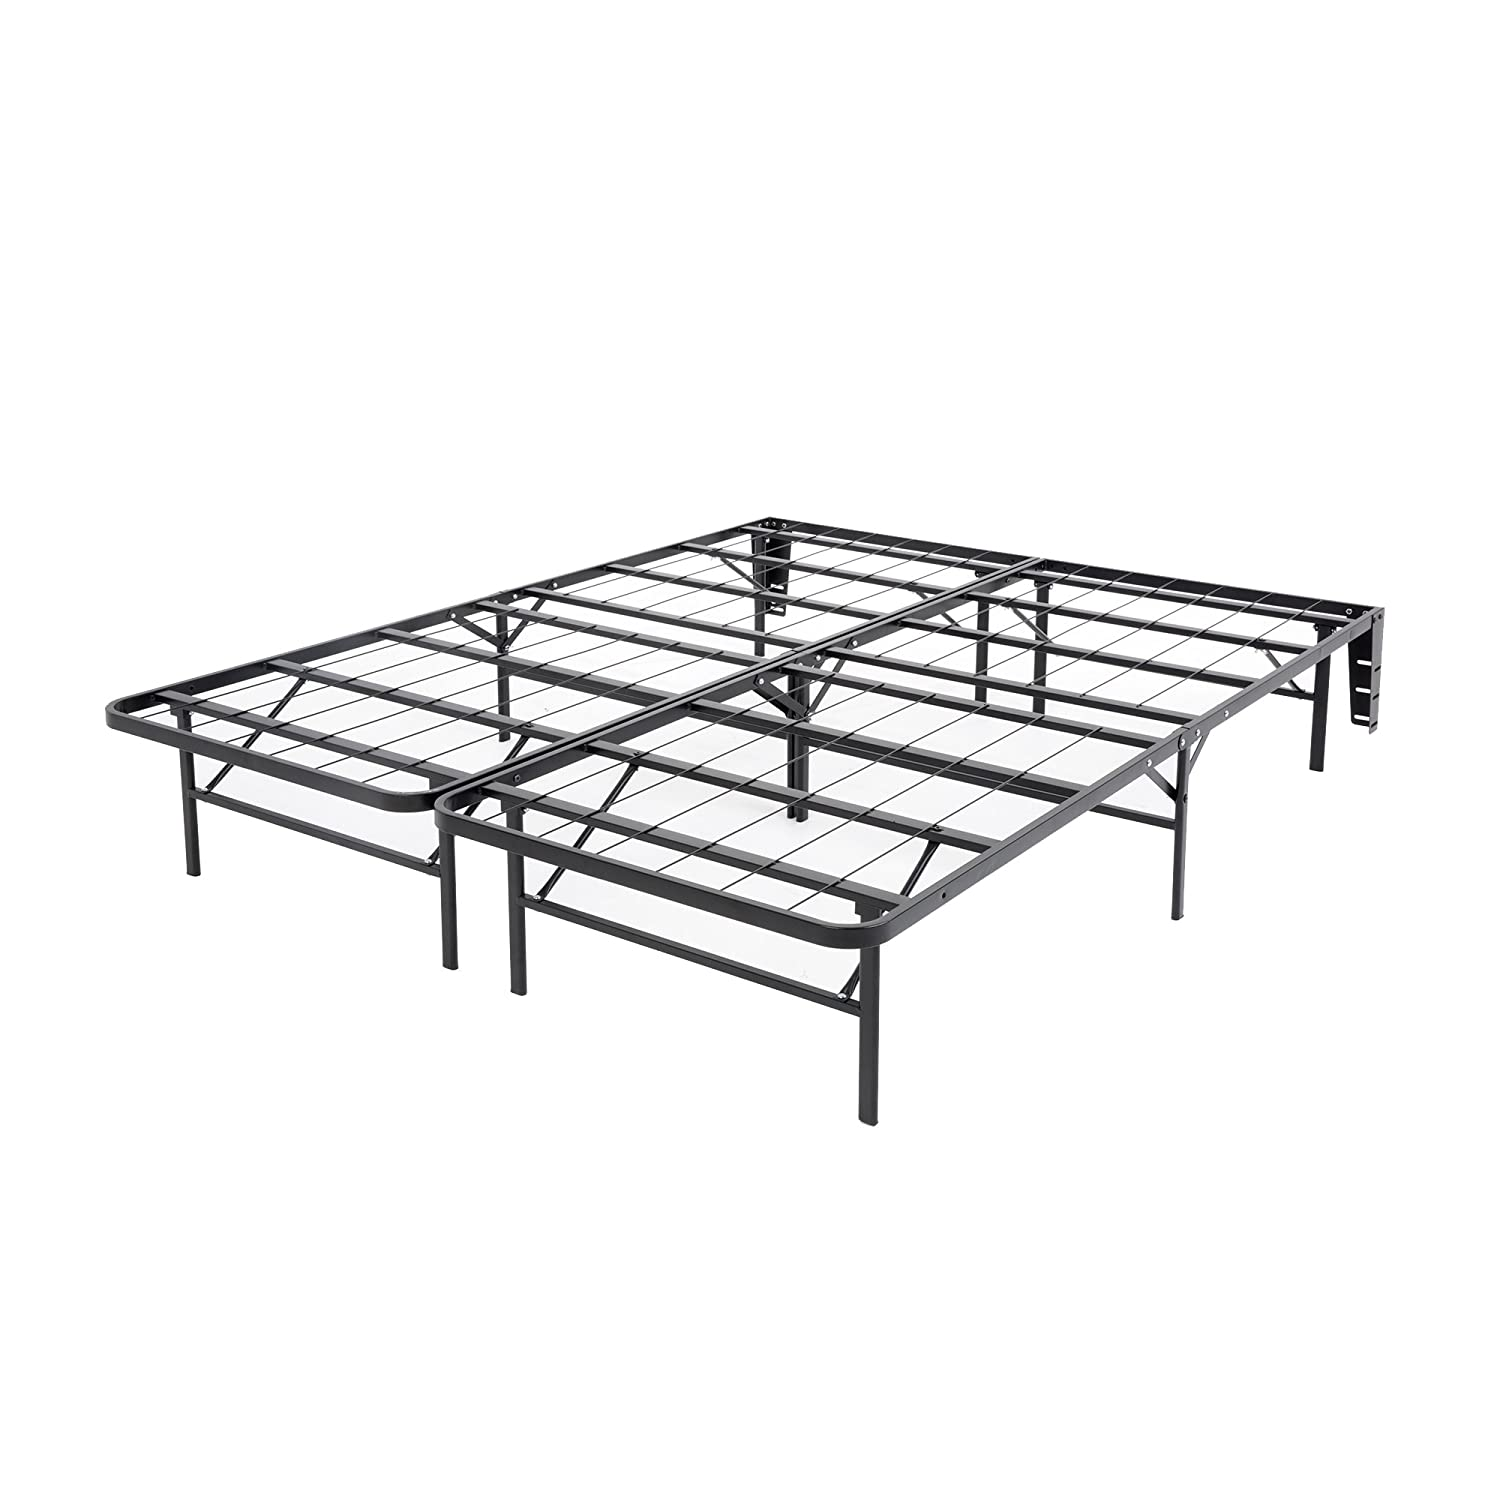 Atlas Bed Base Support System, Twin Fashion Bed Group 460007